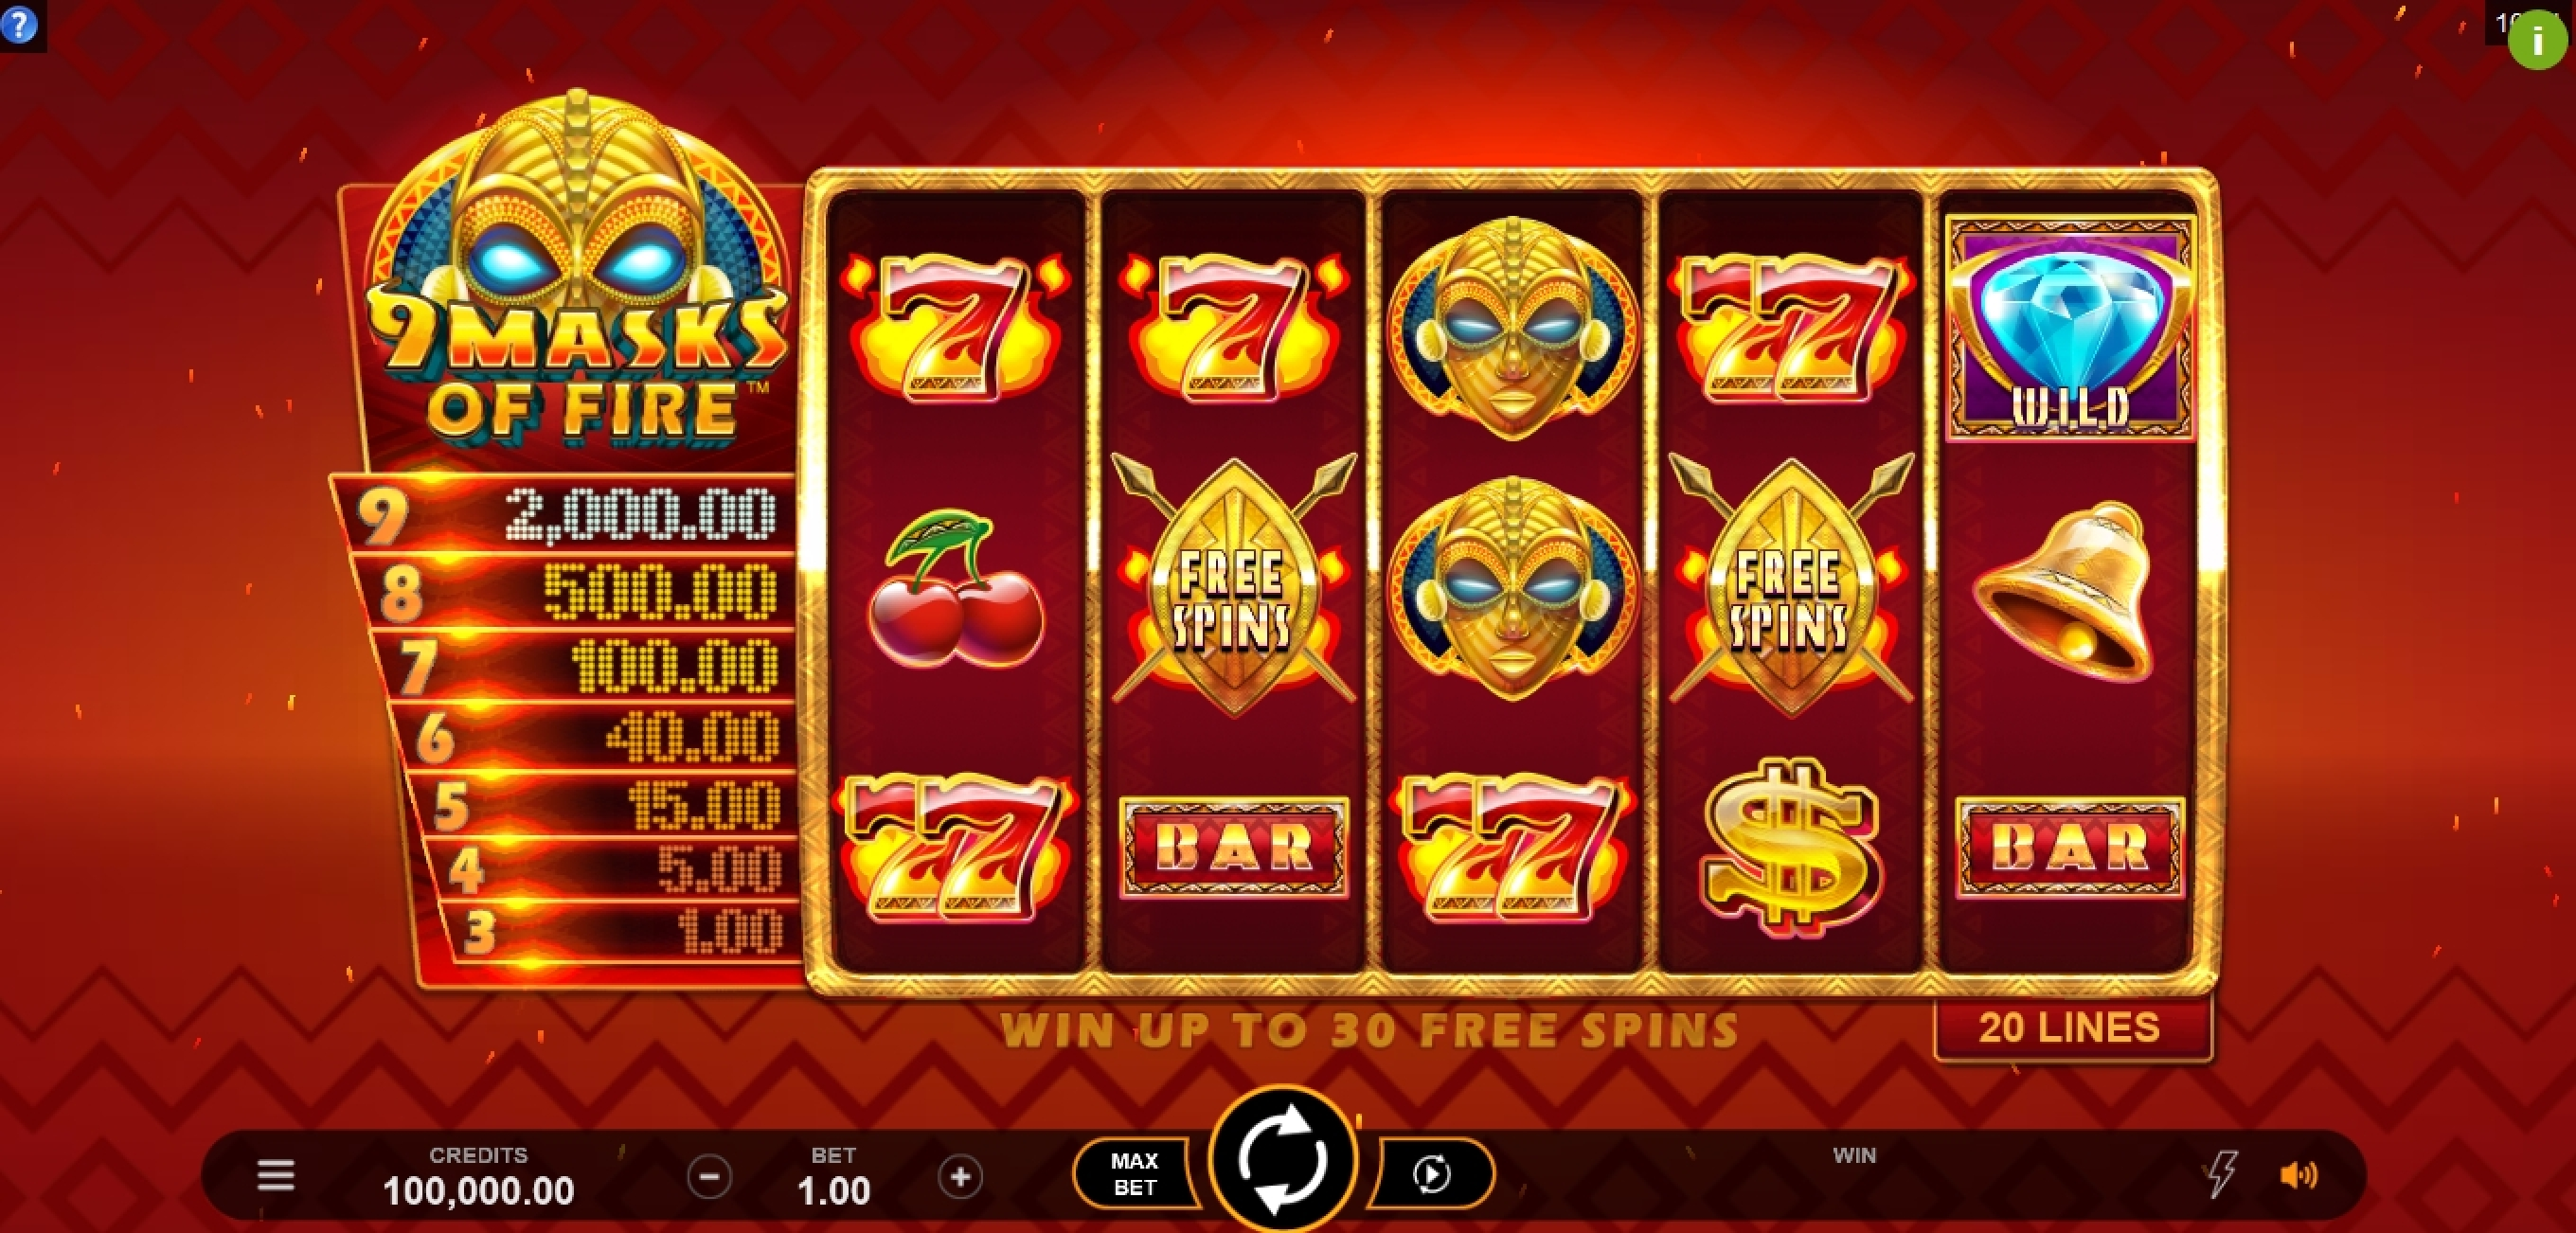 Reels in 9 Masks Of Fire Slot Game by Gameburger Studios